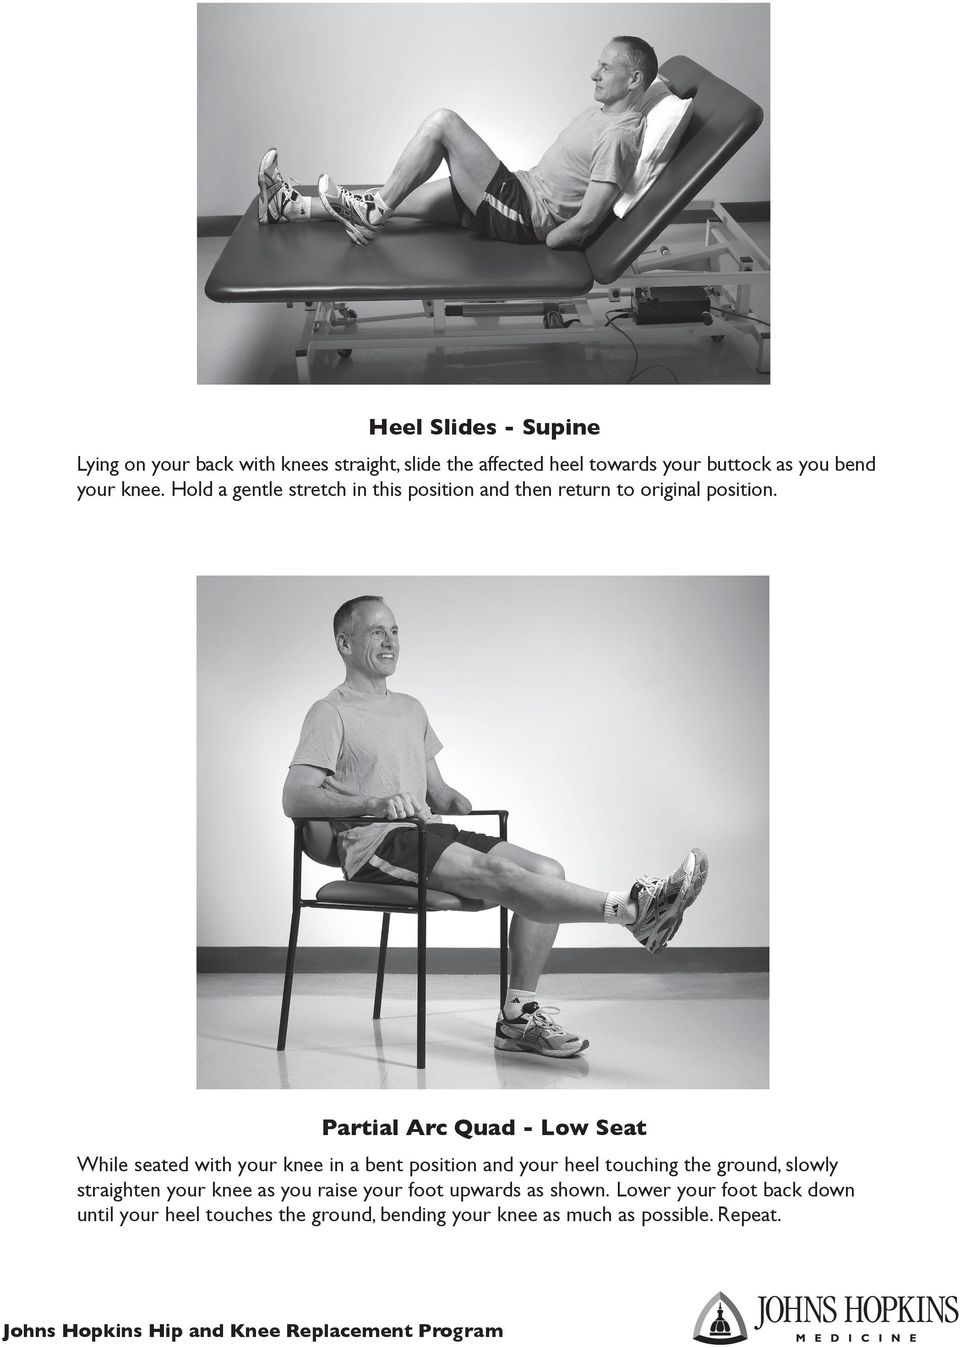 Partial Arc Quad - Low Seat While seated with your knee in a bent position and your heel touching the ground, slowly